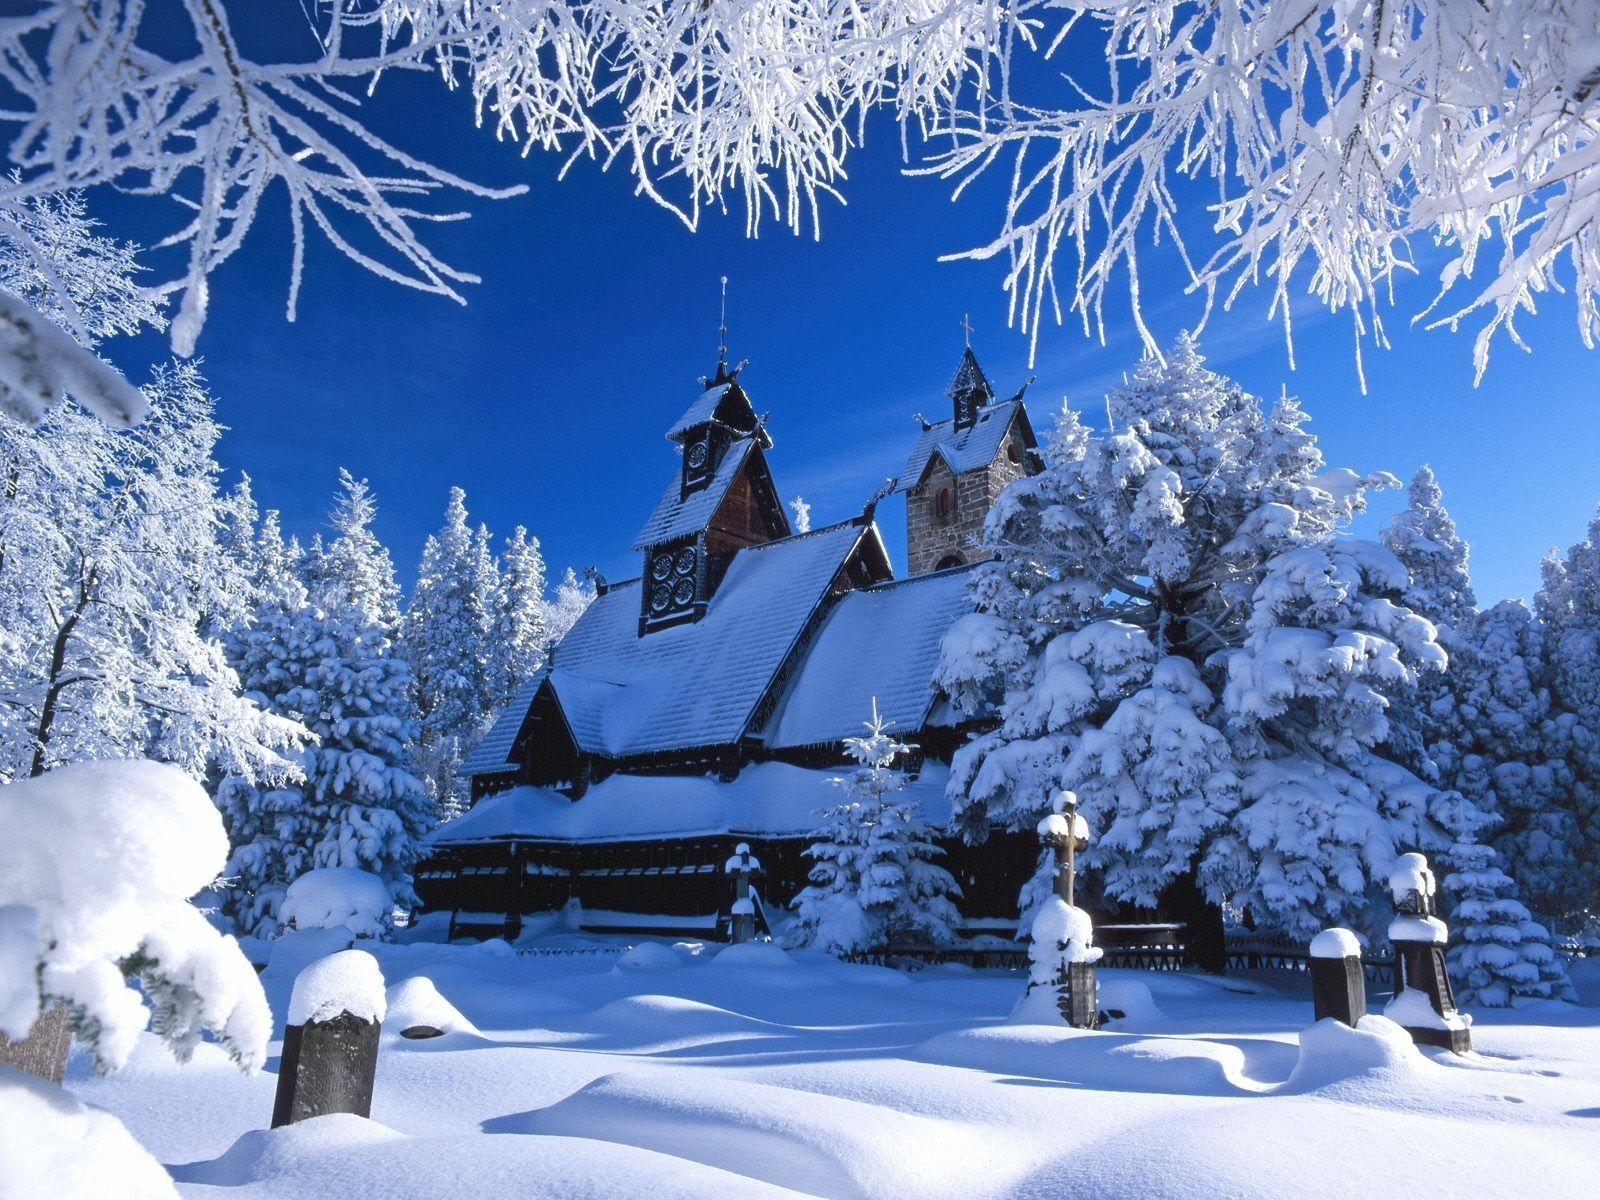 winter time wallpaper cool - photo #18